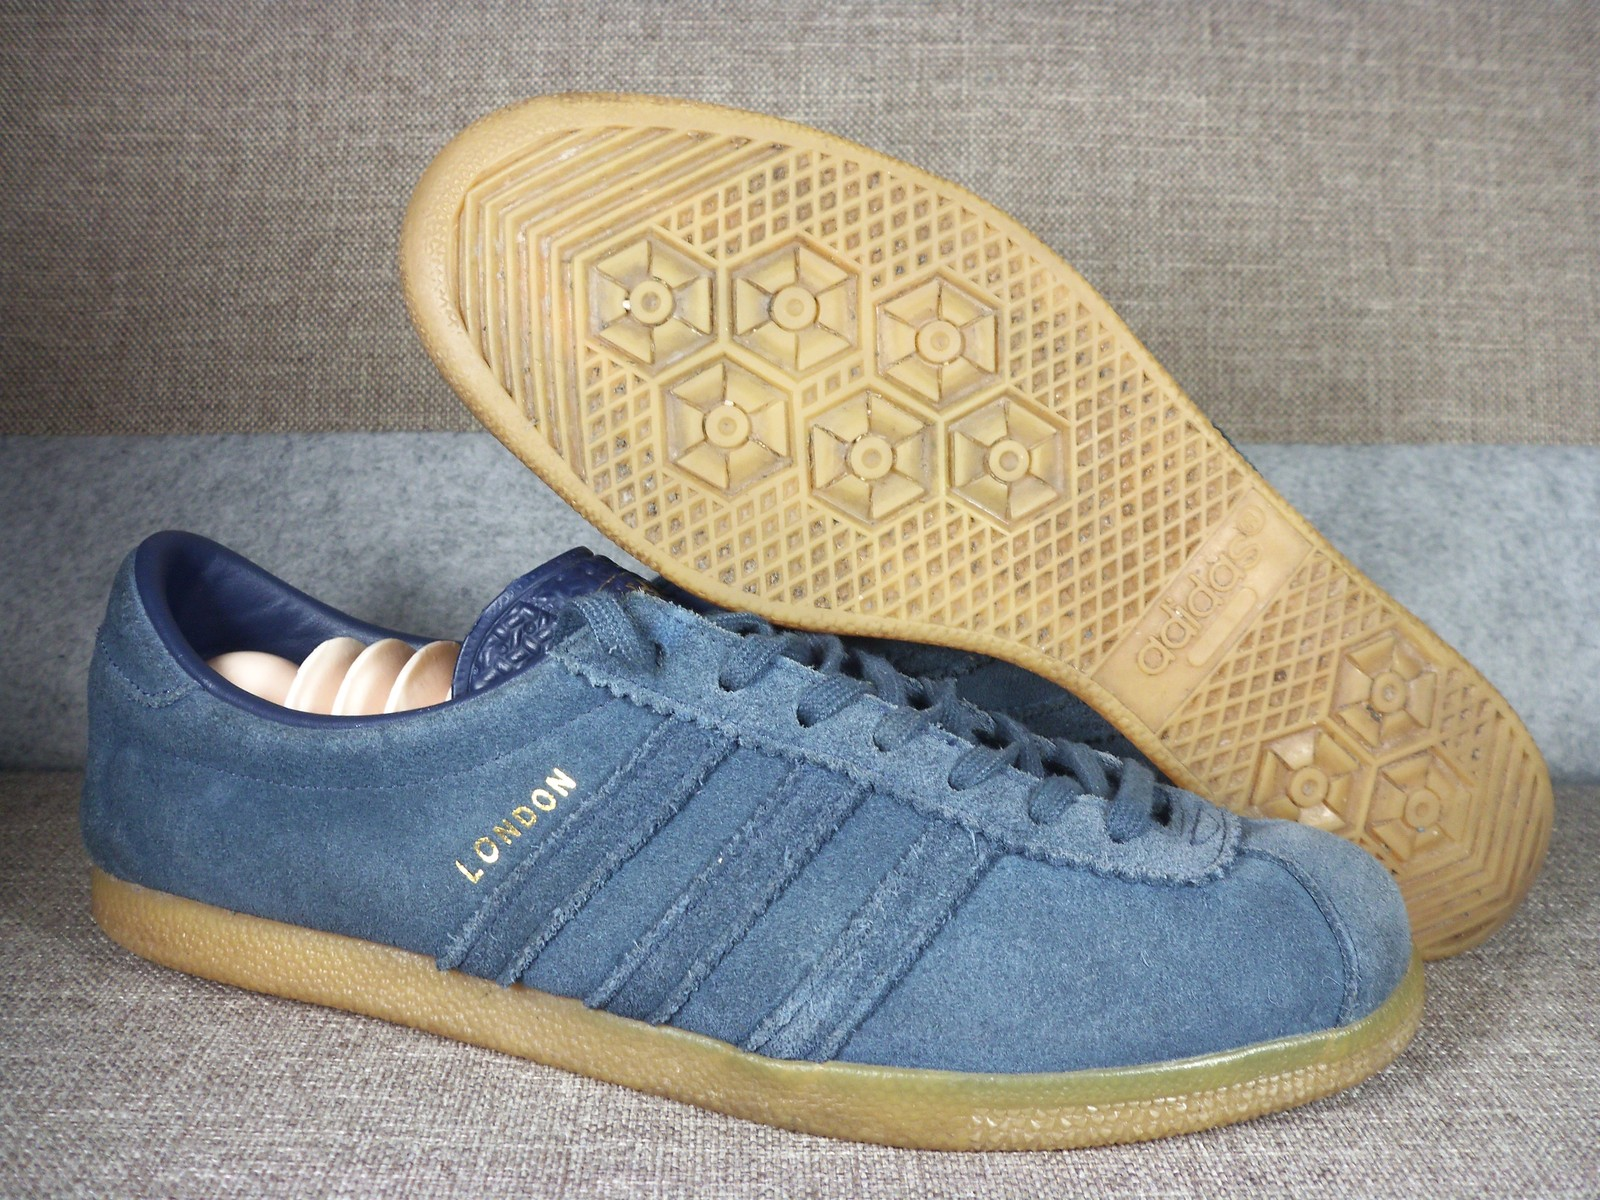 new concept 85b7f d6eee Adidas London Shoes Snaekers Uk 9 Us 9.5 and 50 similar items. 100 5397